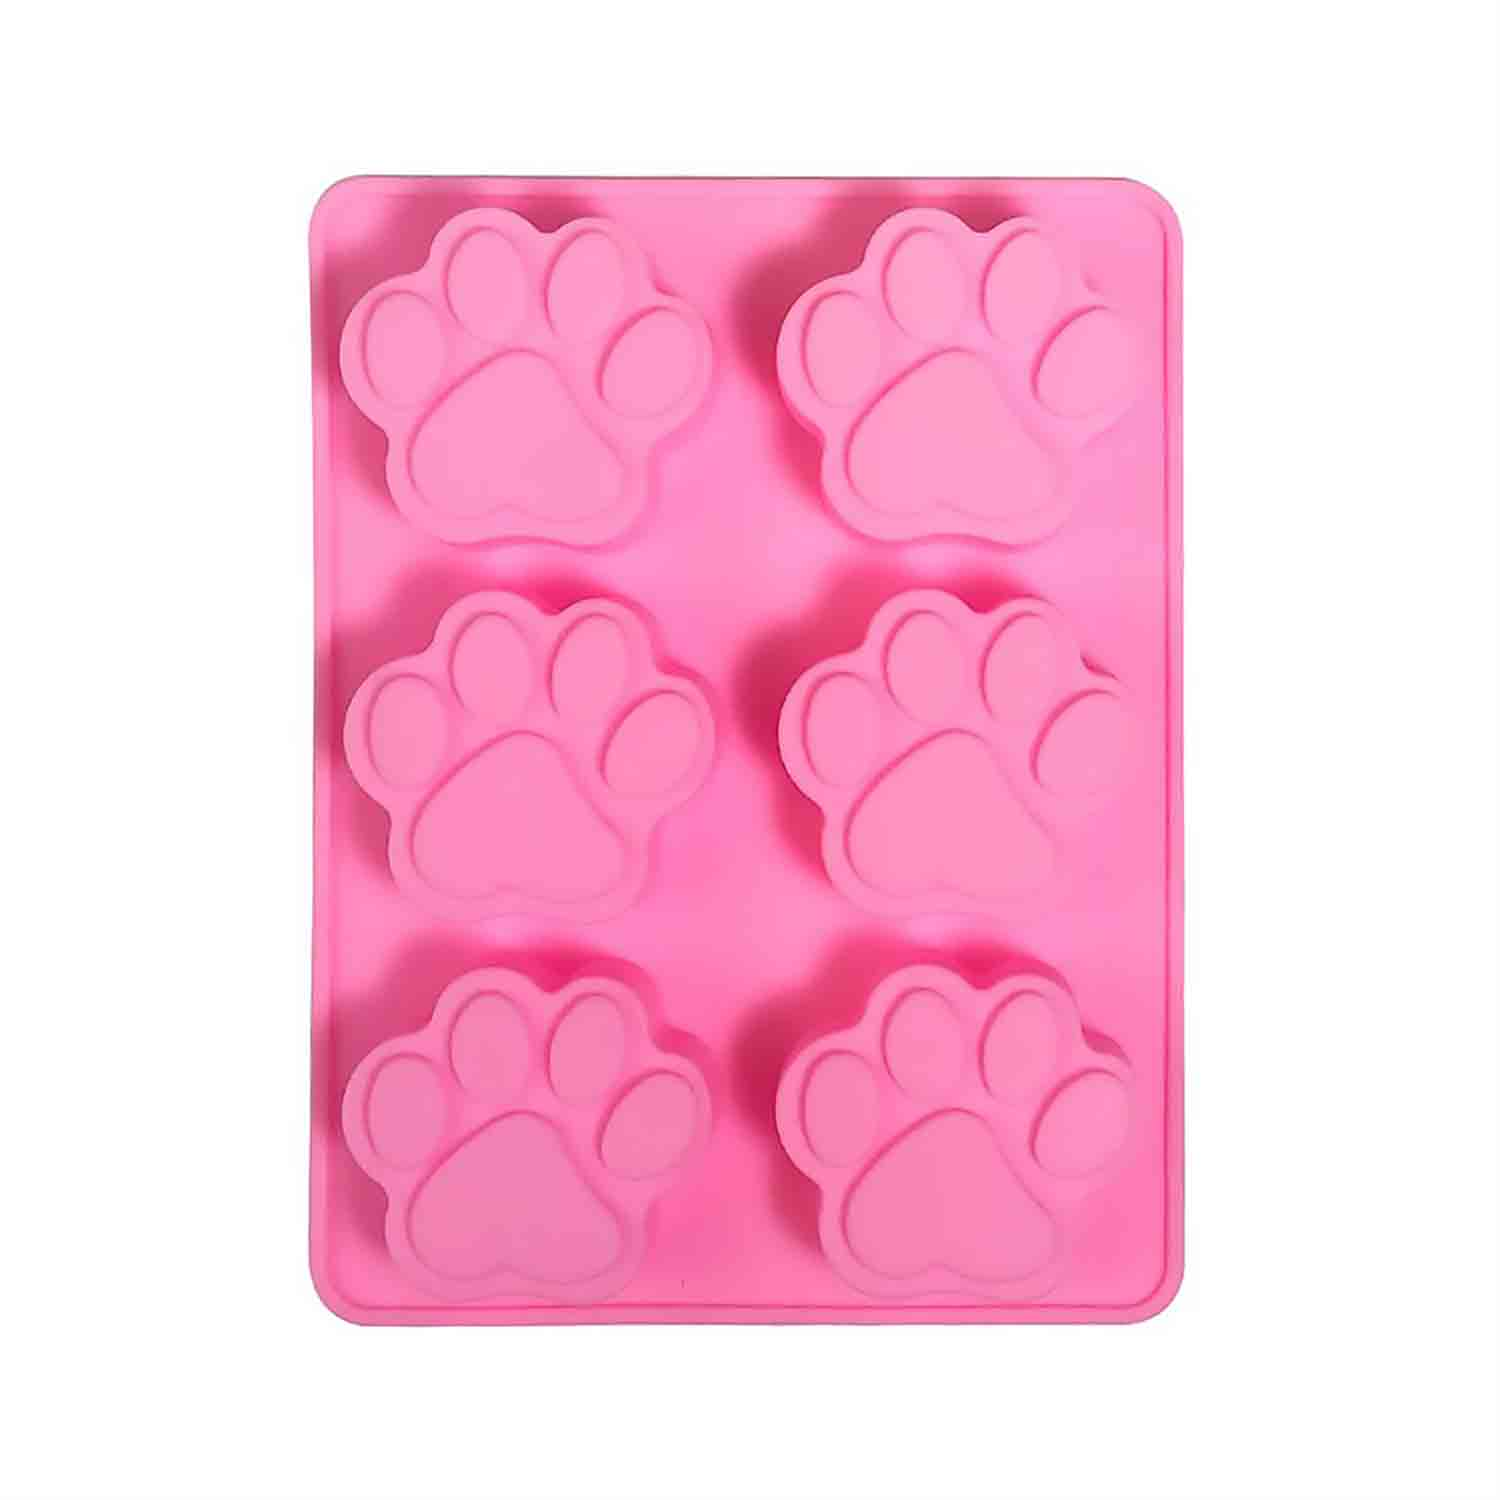 Dog Paw Baking Mold